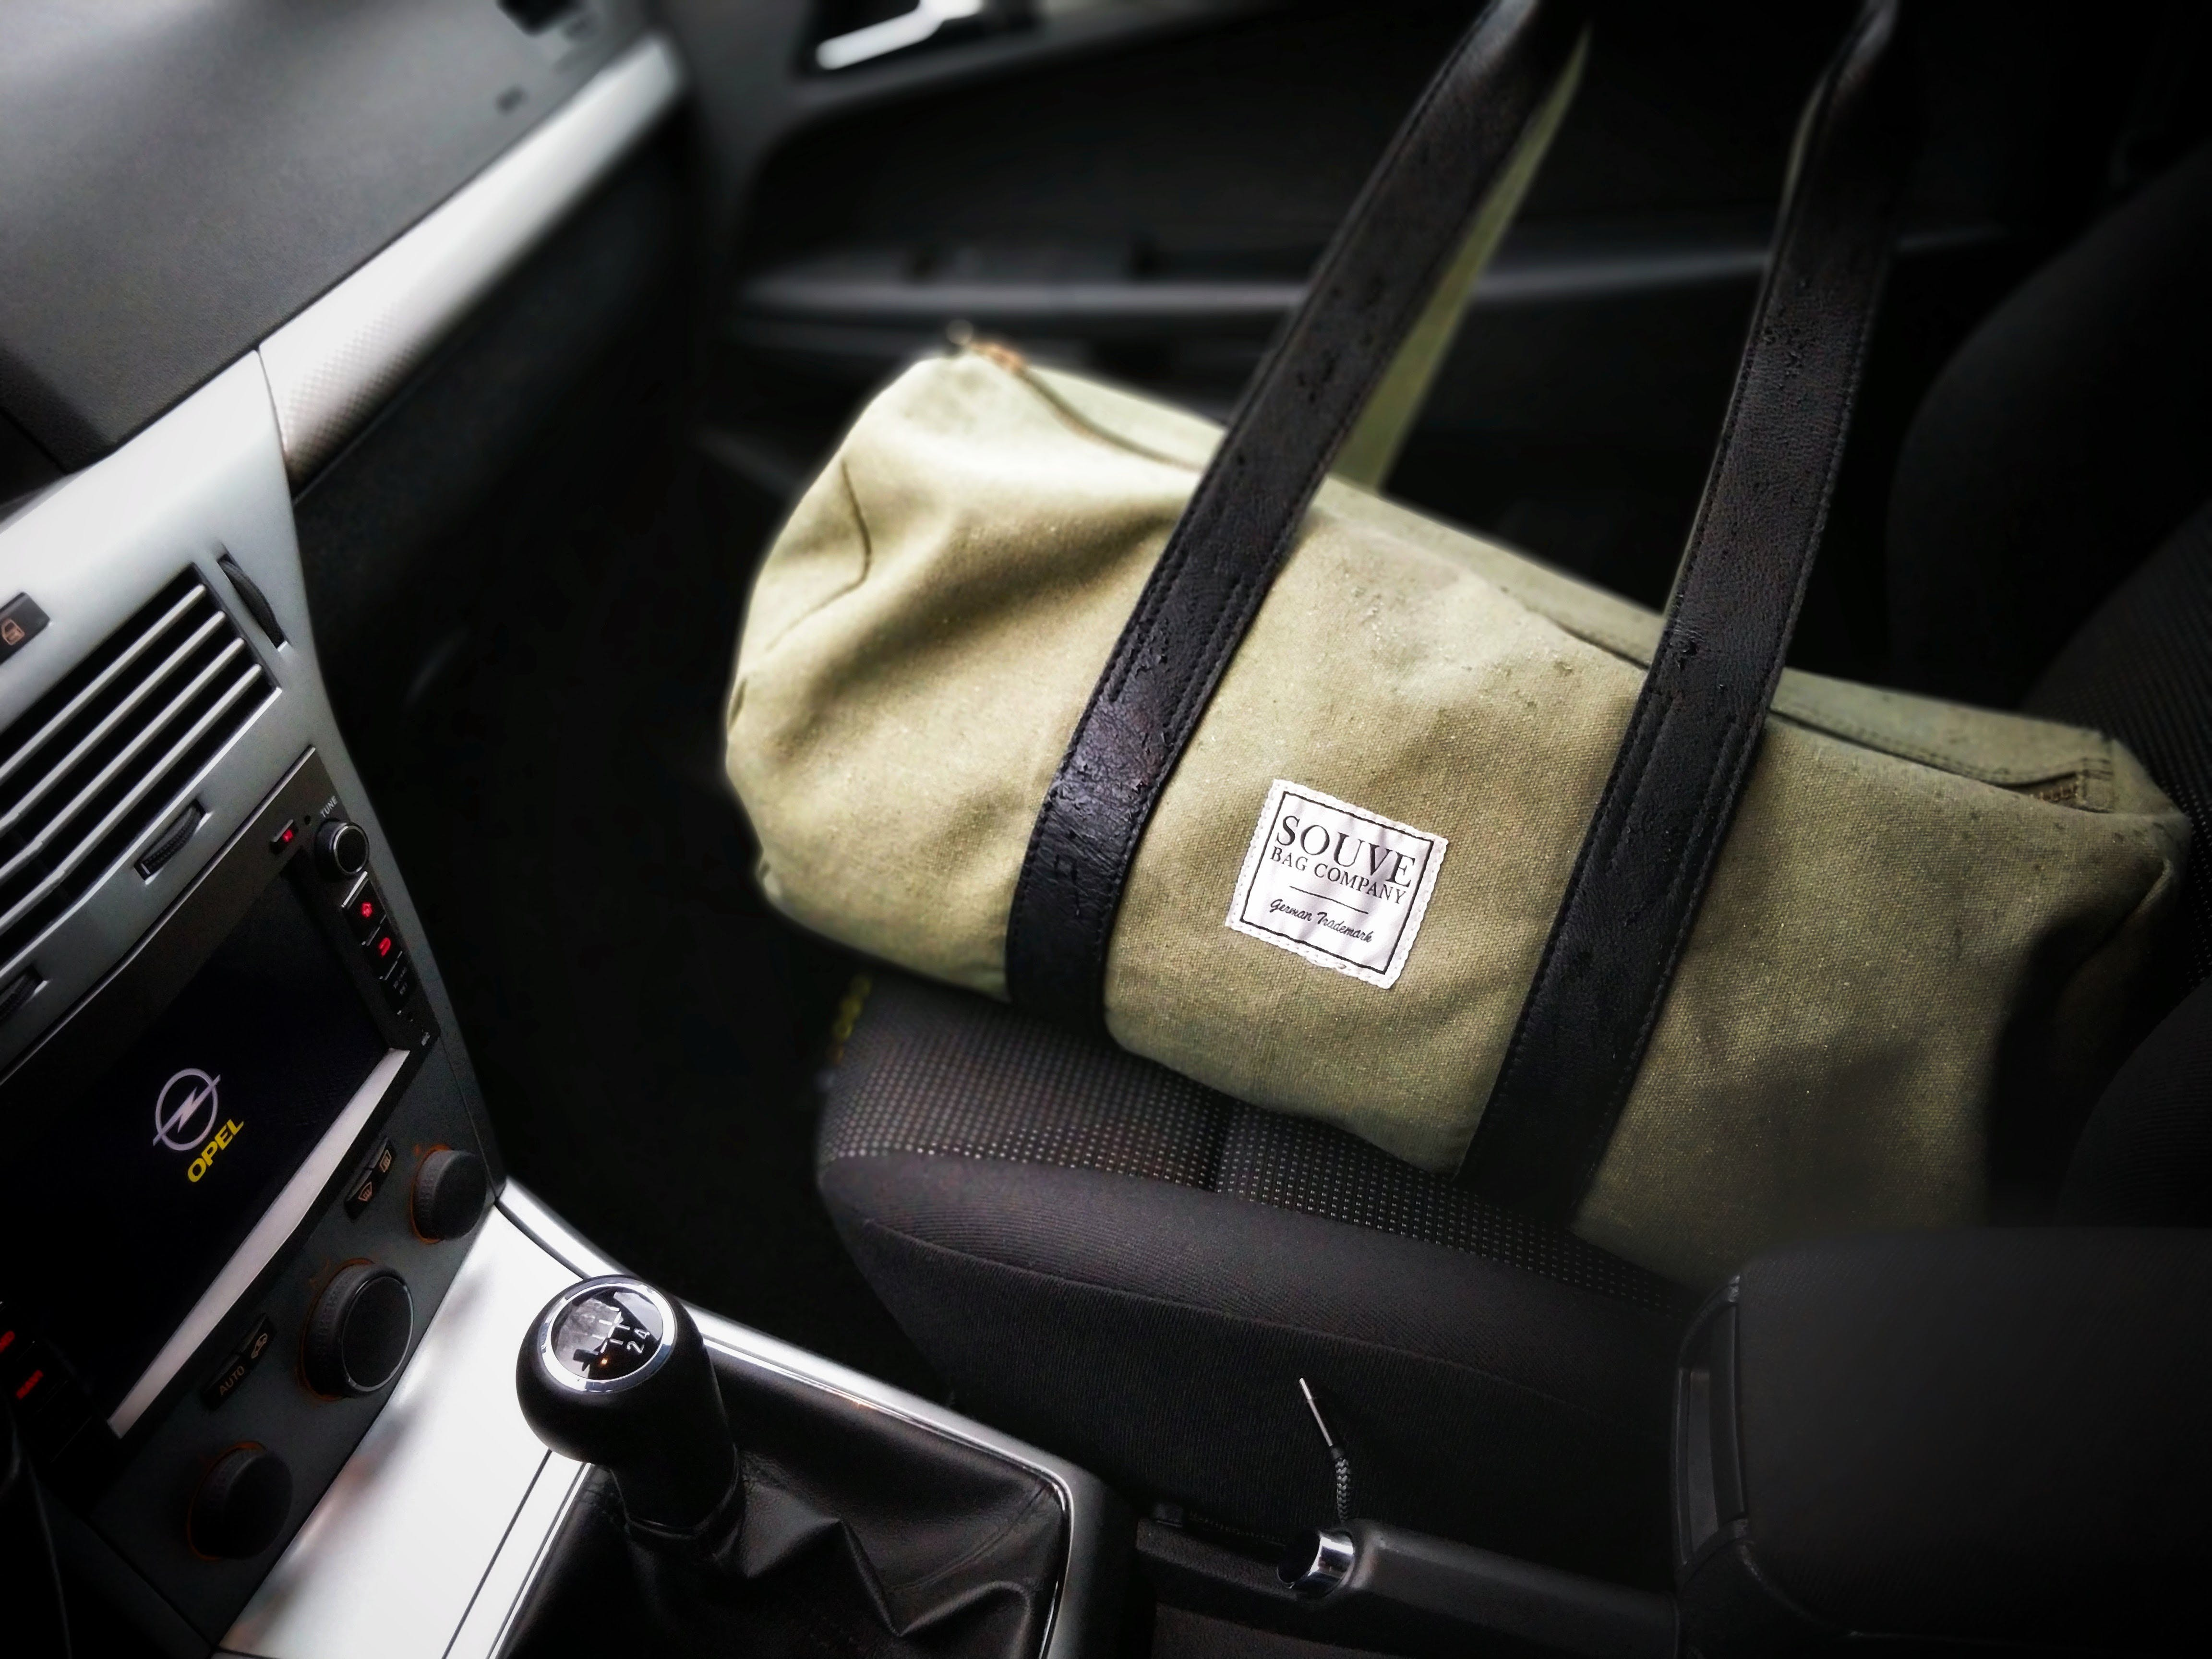 Brown and Black Duffel Bag on a Car Seat